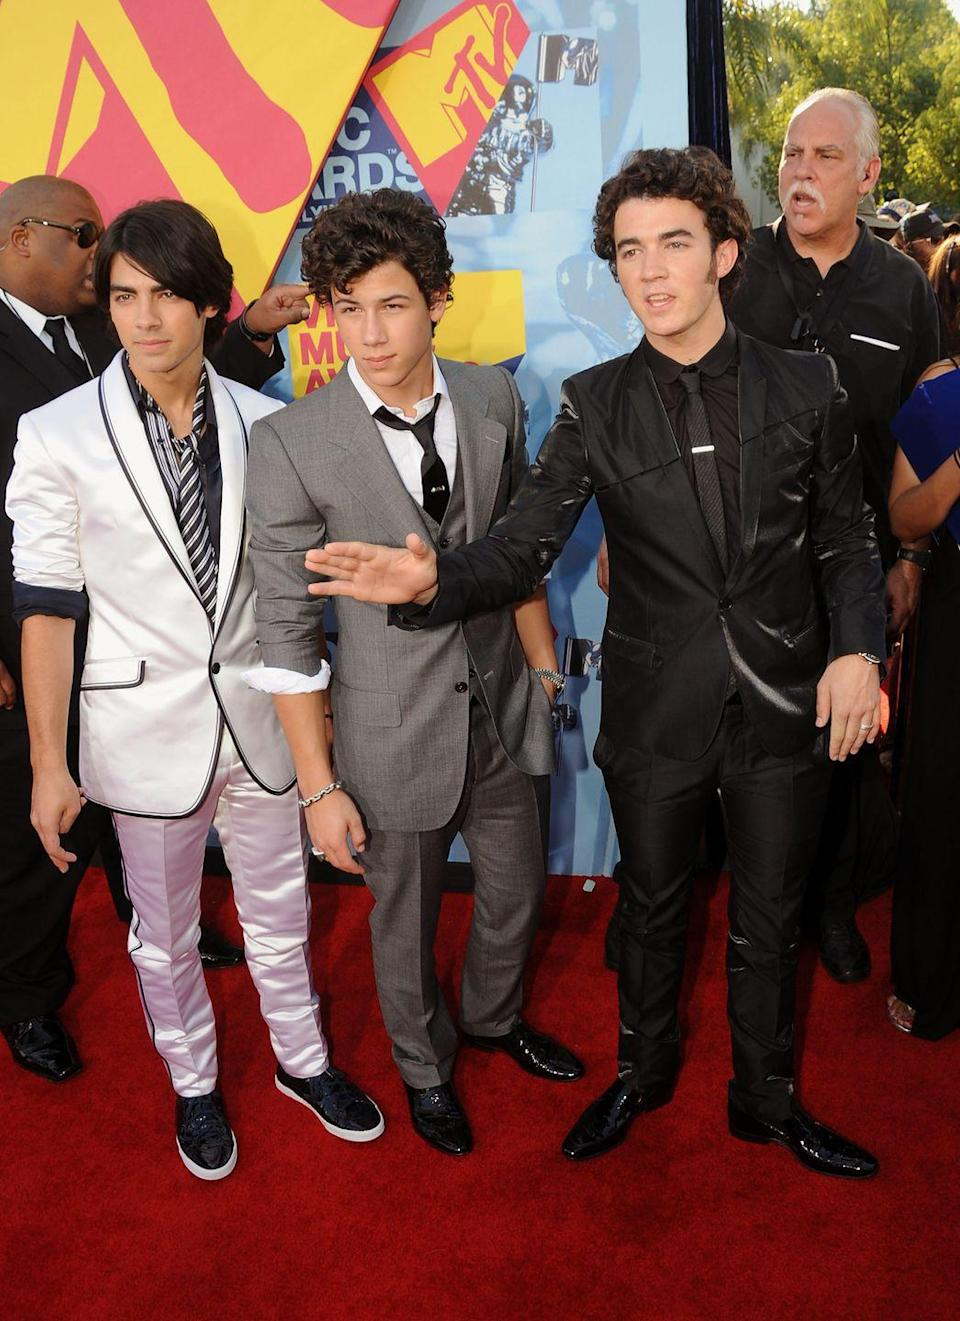 <p>The Jonas brothers were definitely coordinating in these white, gray, and black suits at the 2008 VMAs.</p>